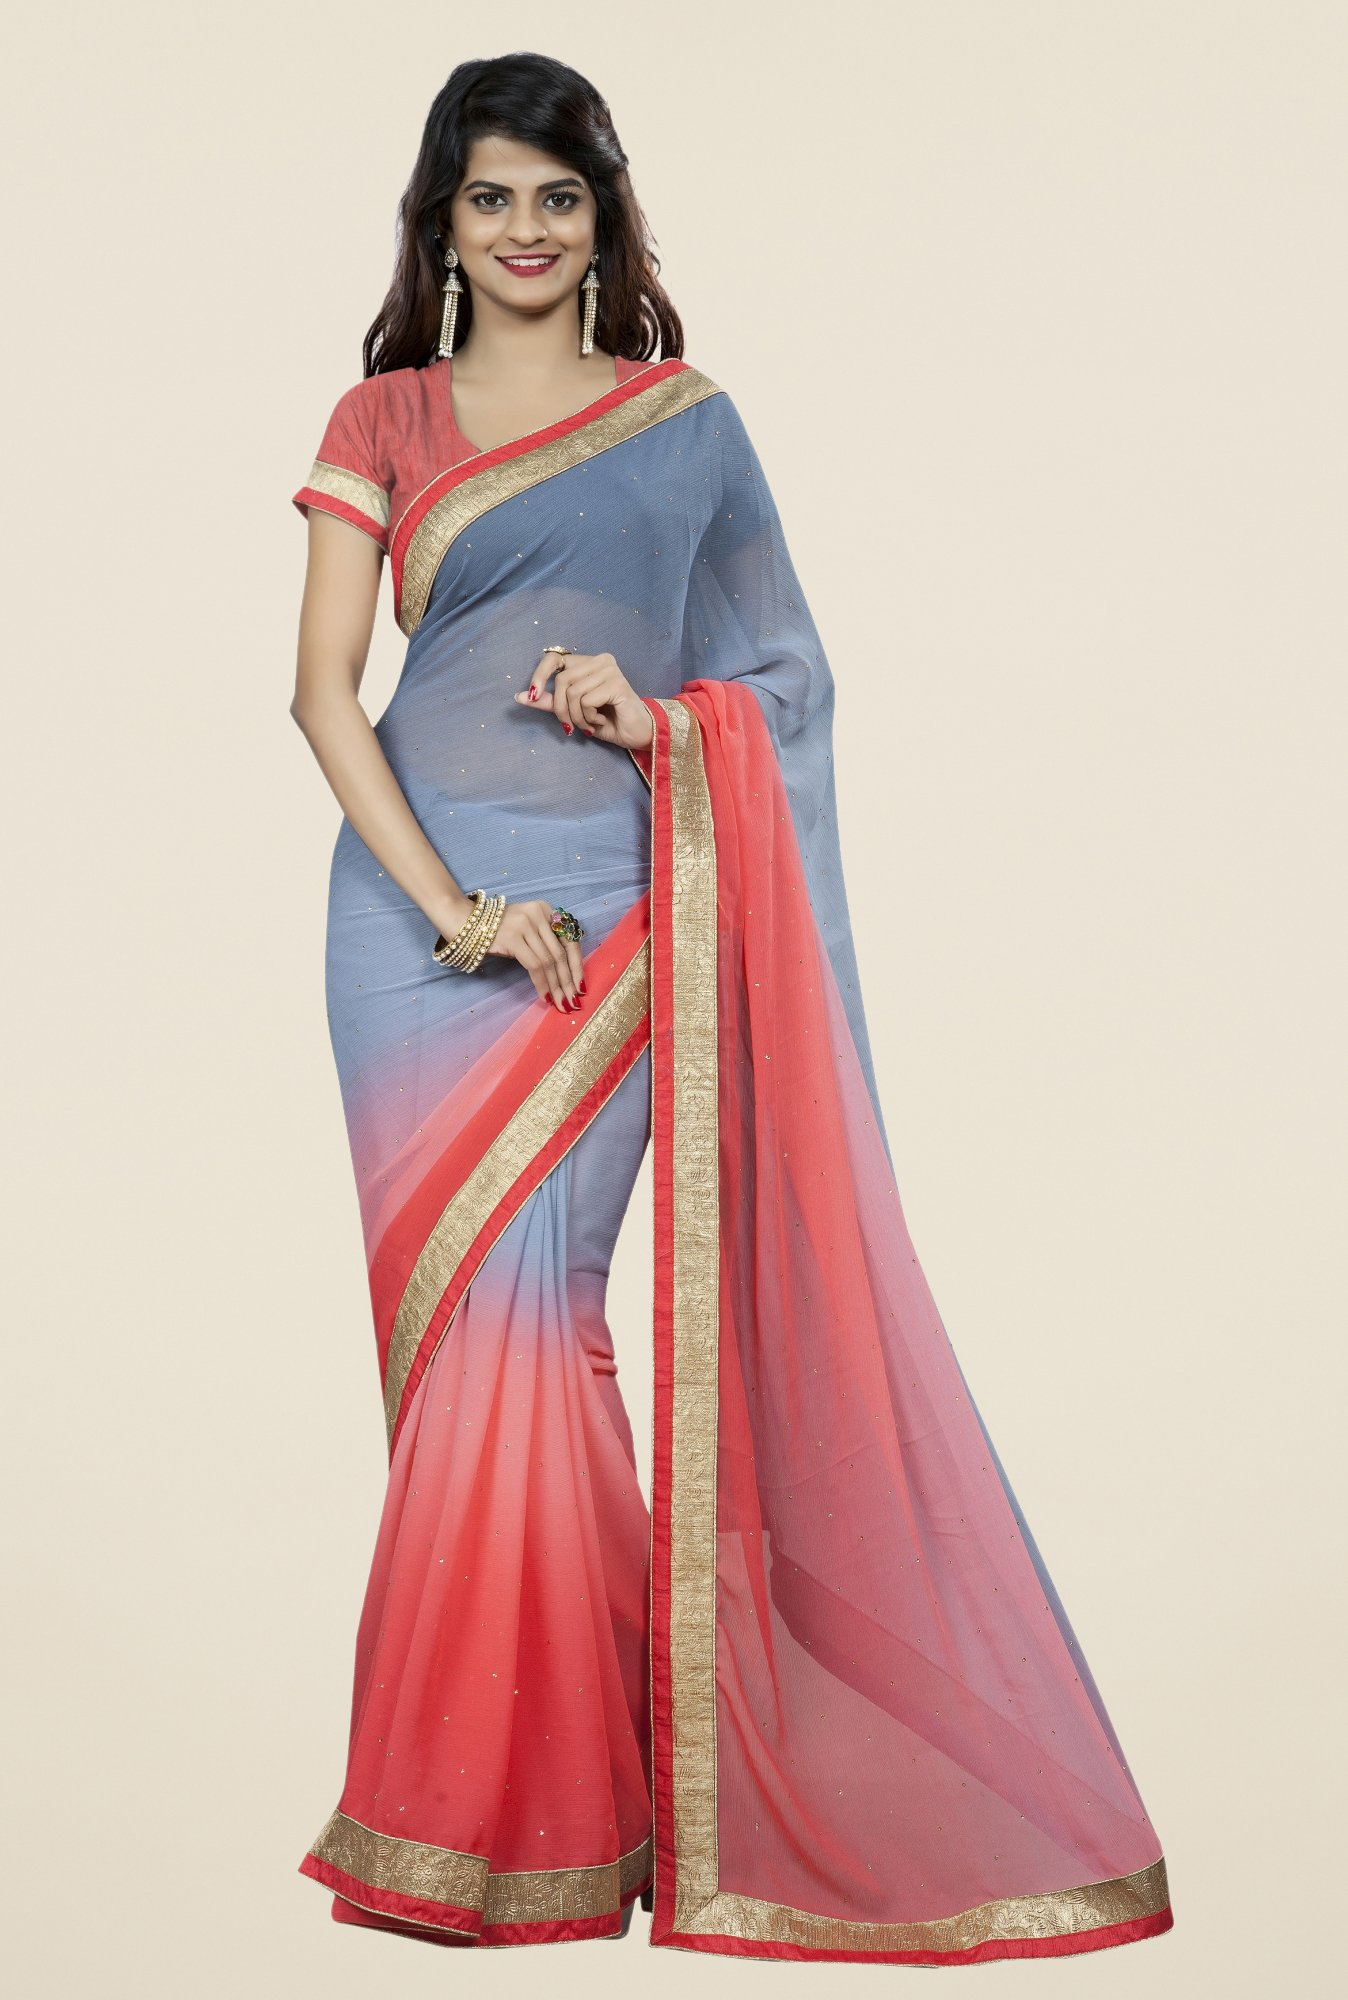 Triveni Delightful Grey & Peach Chiffon Saree